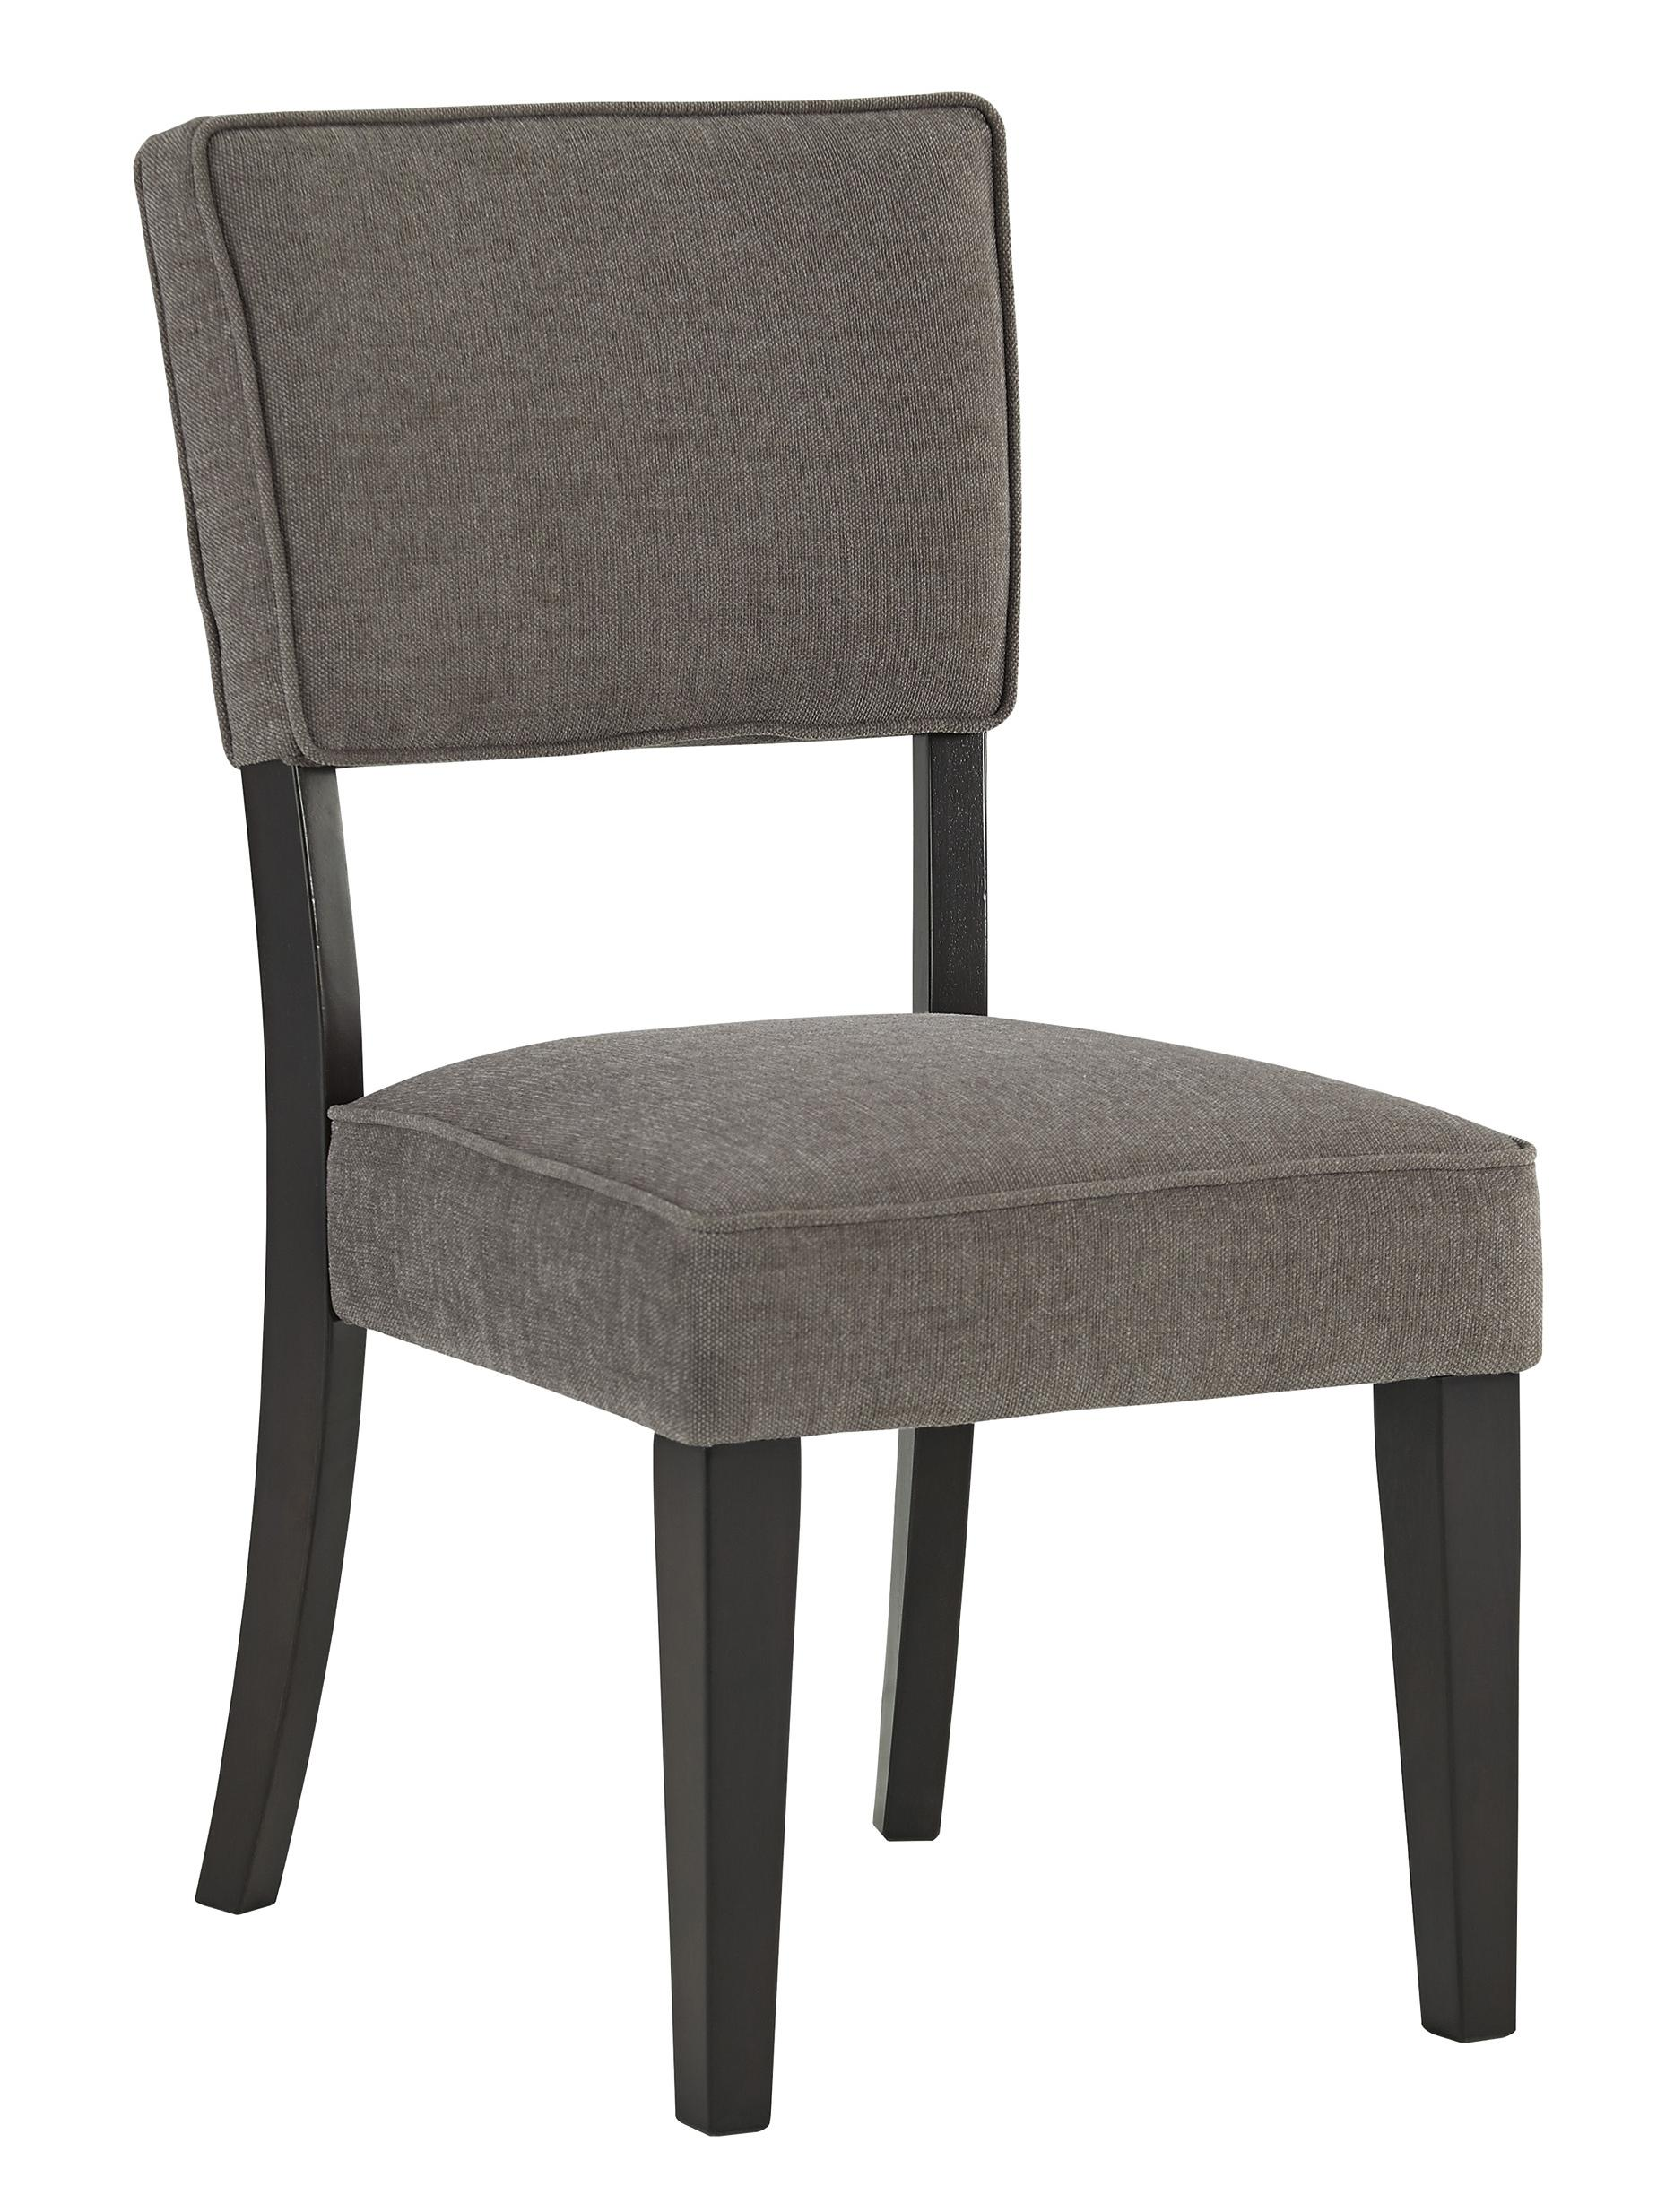 Signature Design by Ashley Gavelston Dining Upholstered Side Chair - Item Number: D532-03